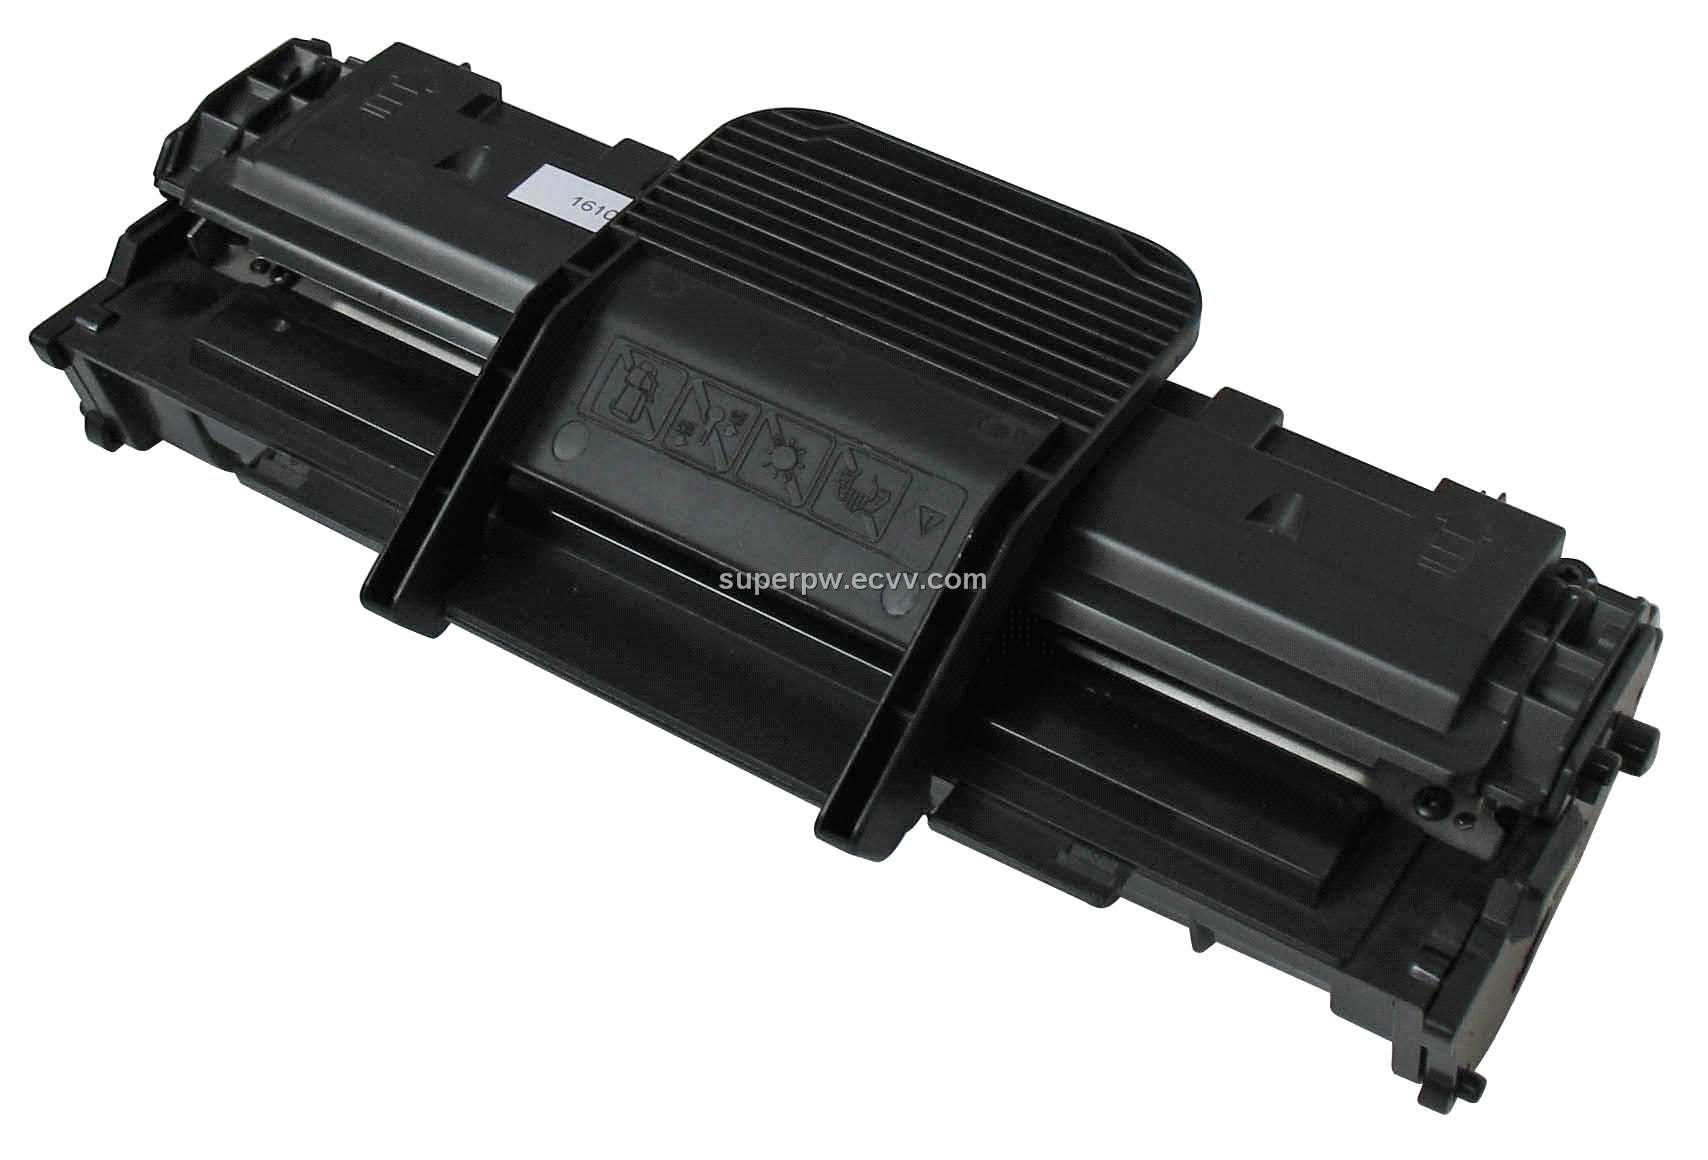 Tonner For Printer Cartridges Cartridges Toner